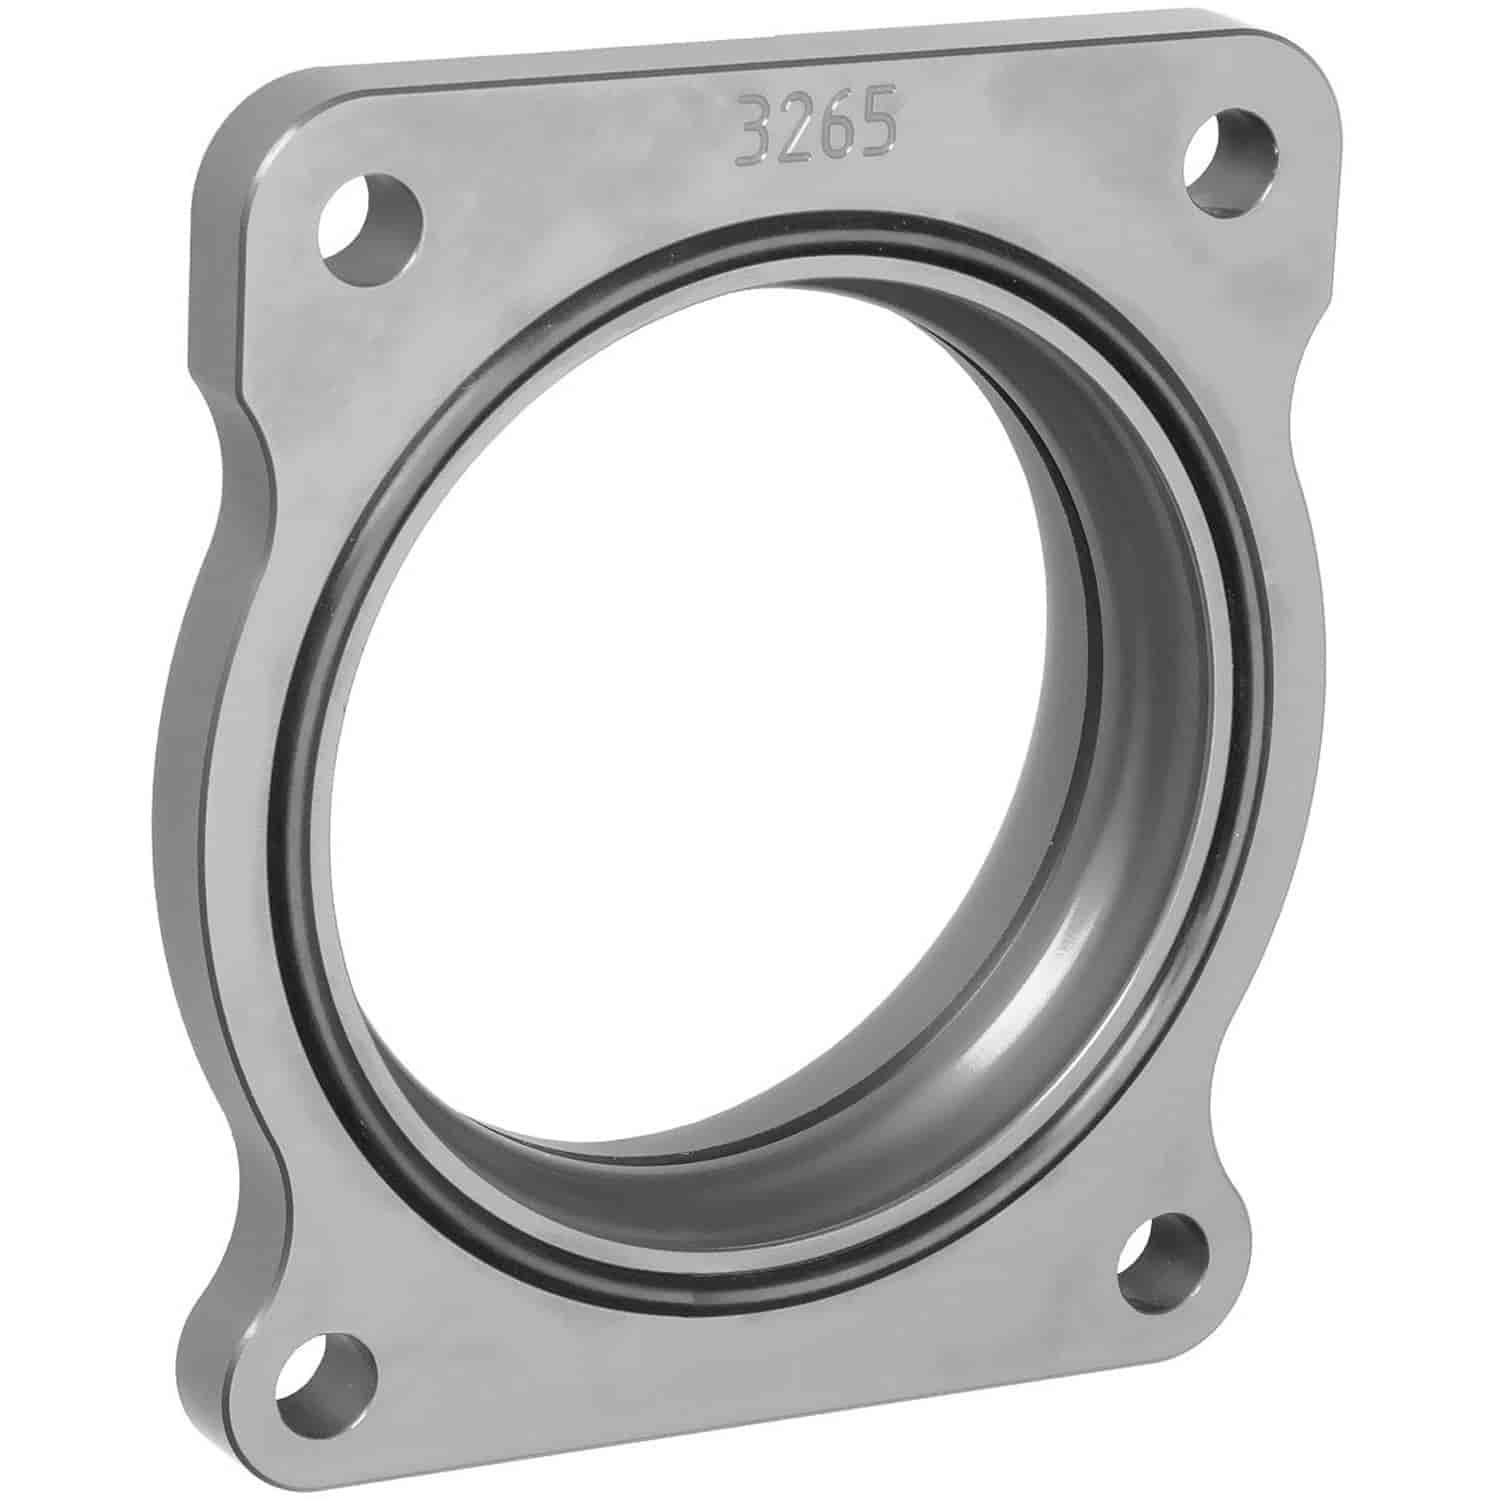 Hamburger's 3265 - Hamburger's Torque-Curve EFI Spacers